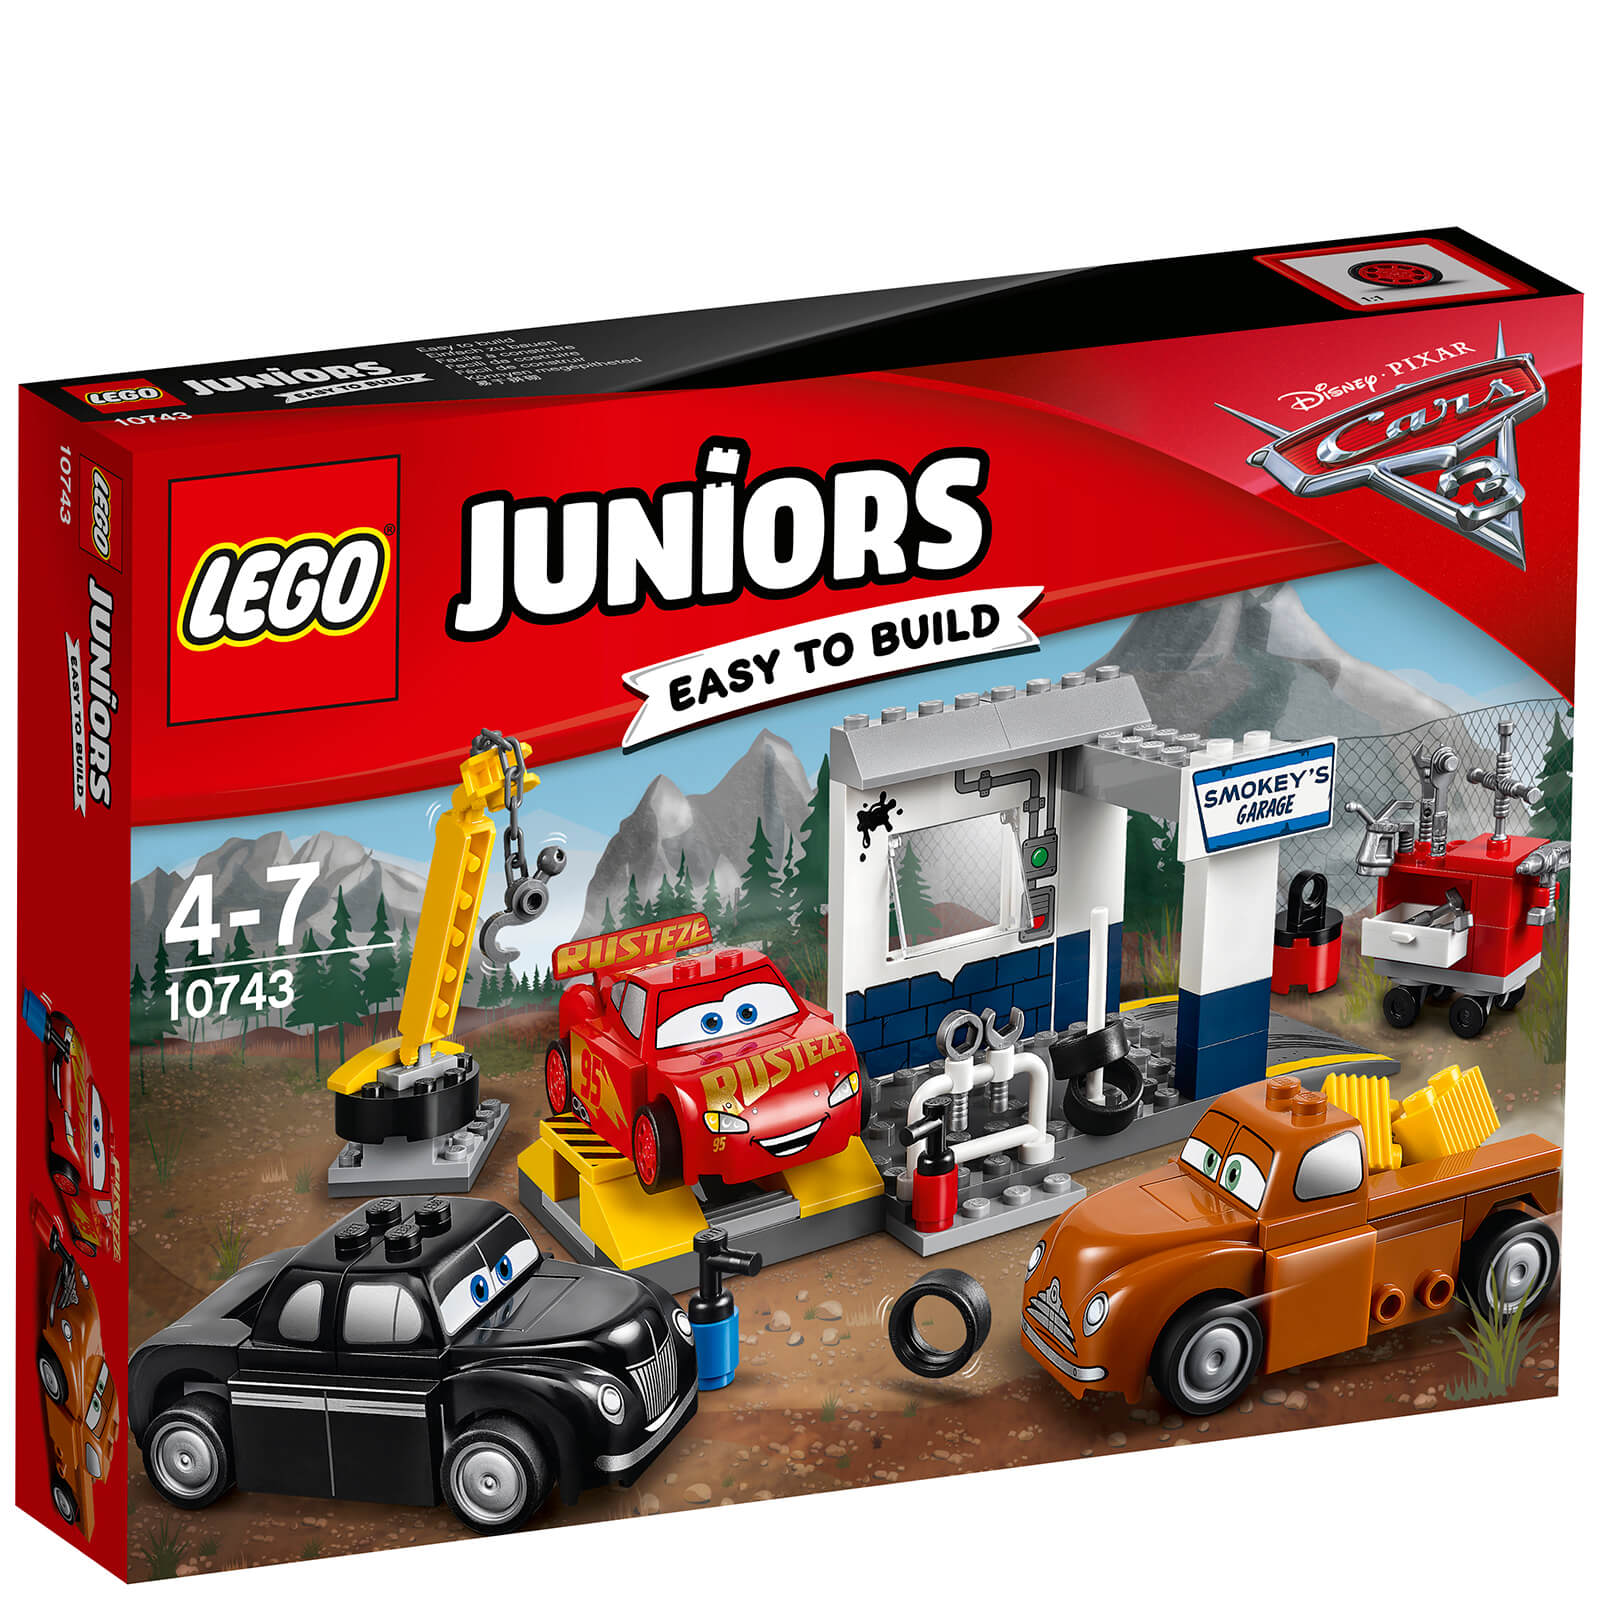 LEGO Juniors: Cars 3 Smokey